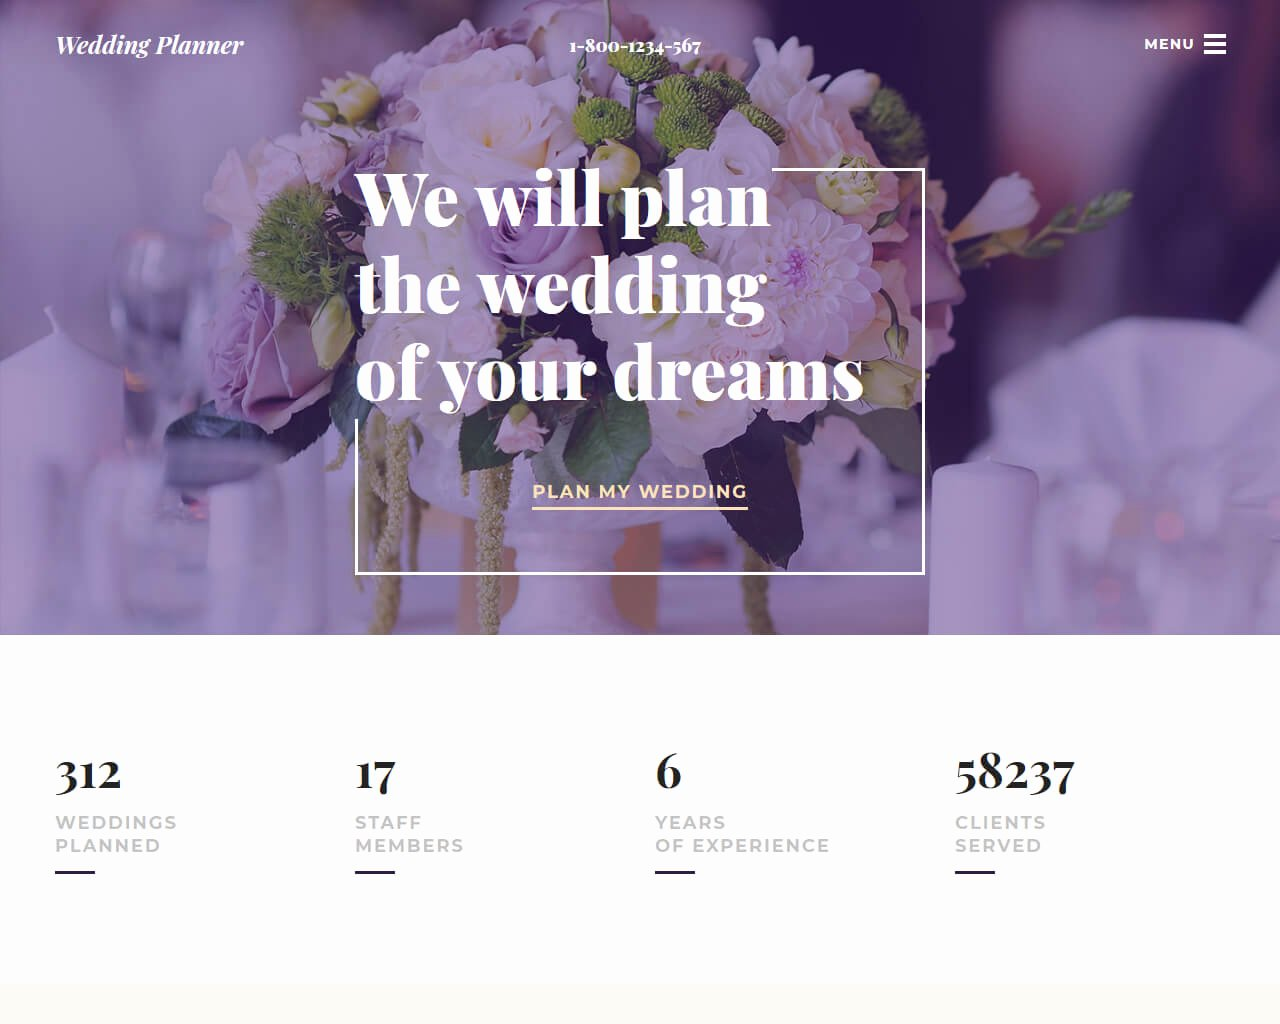 Wedding Planner Website Template Fresh 20 Best Wedding Website Templates for Your Special Day 2018 Templatemag